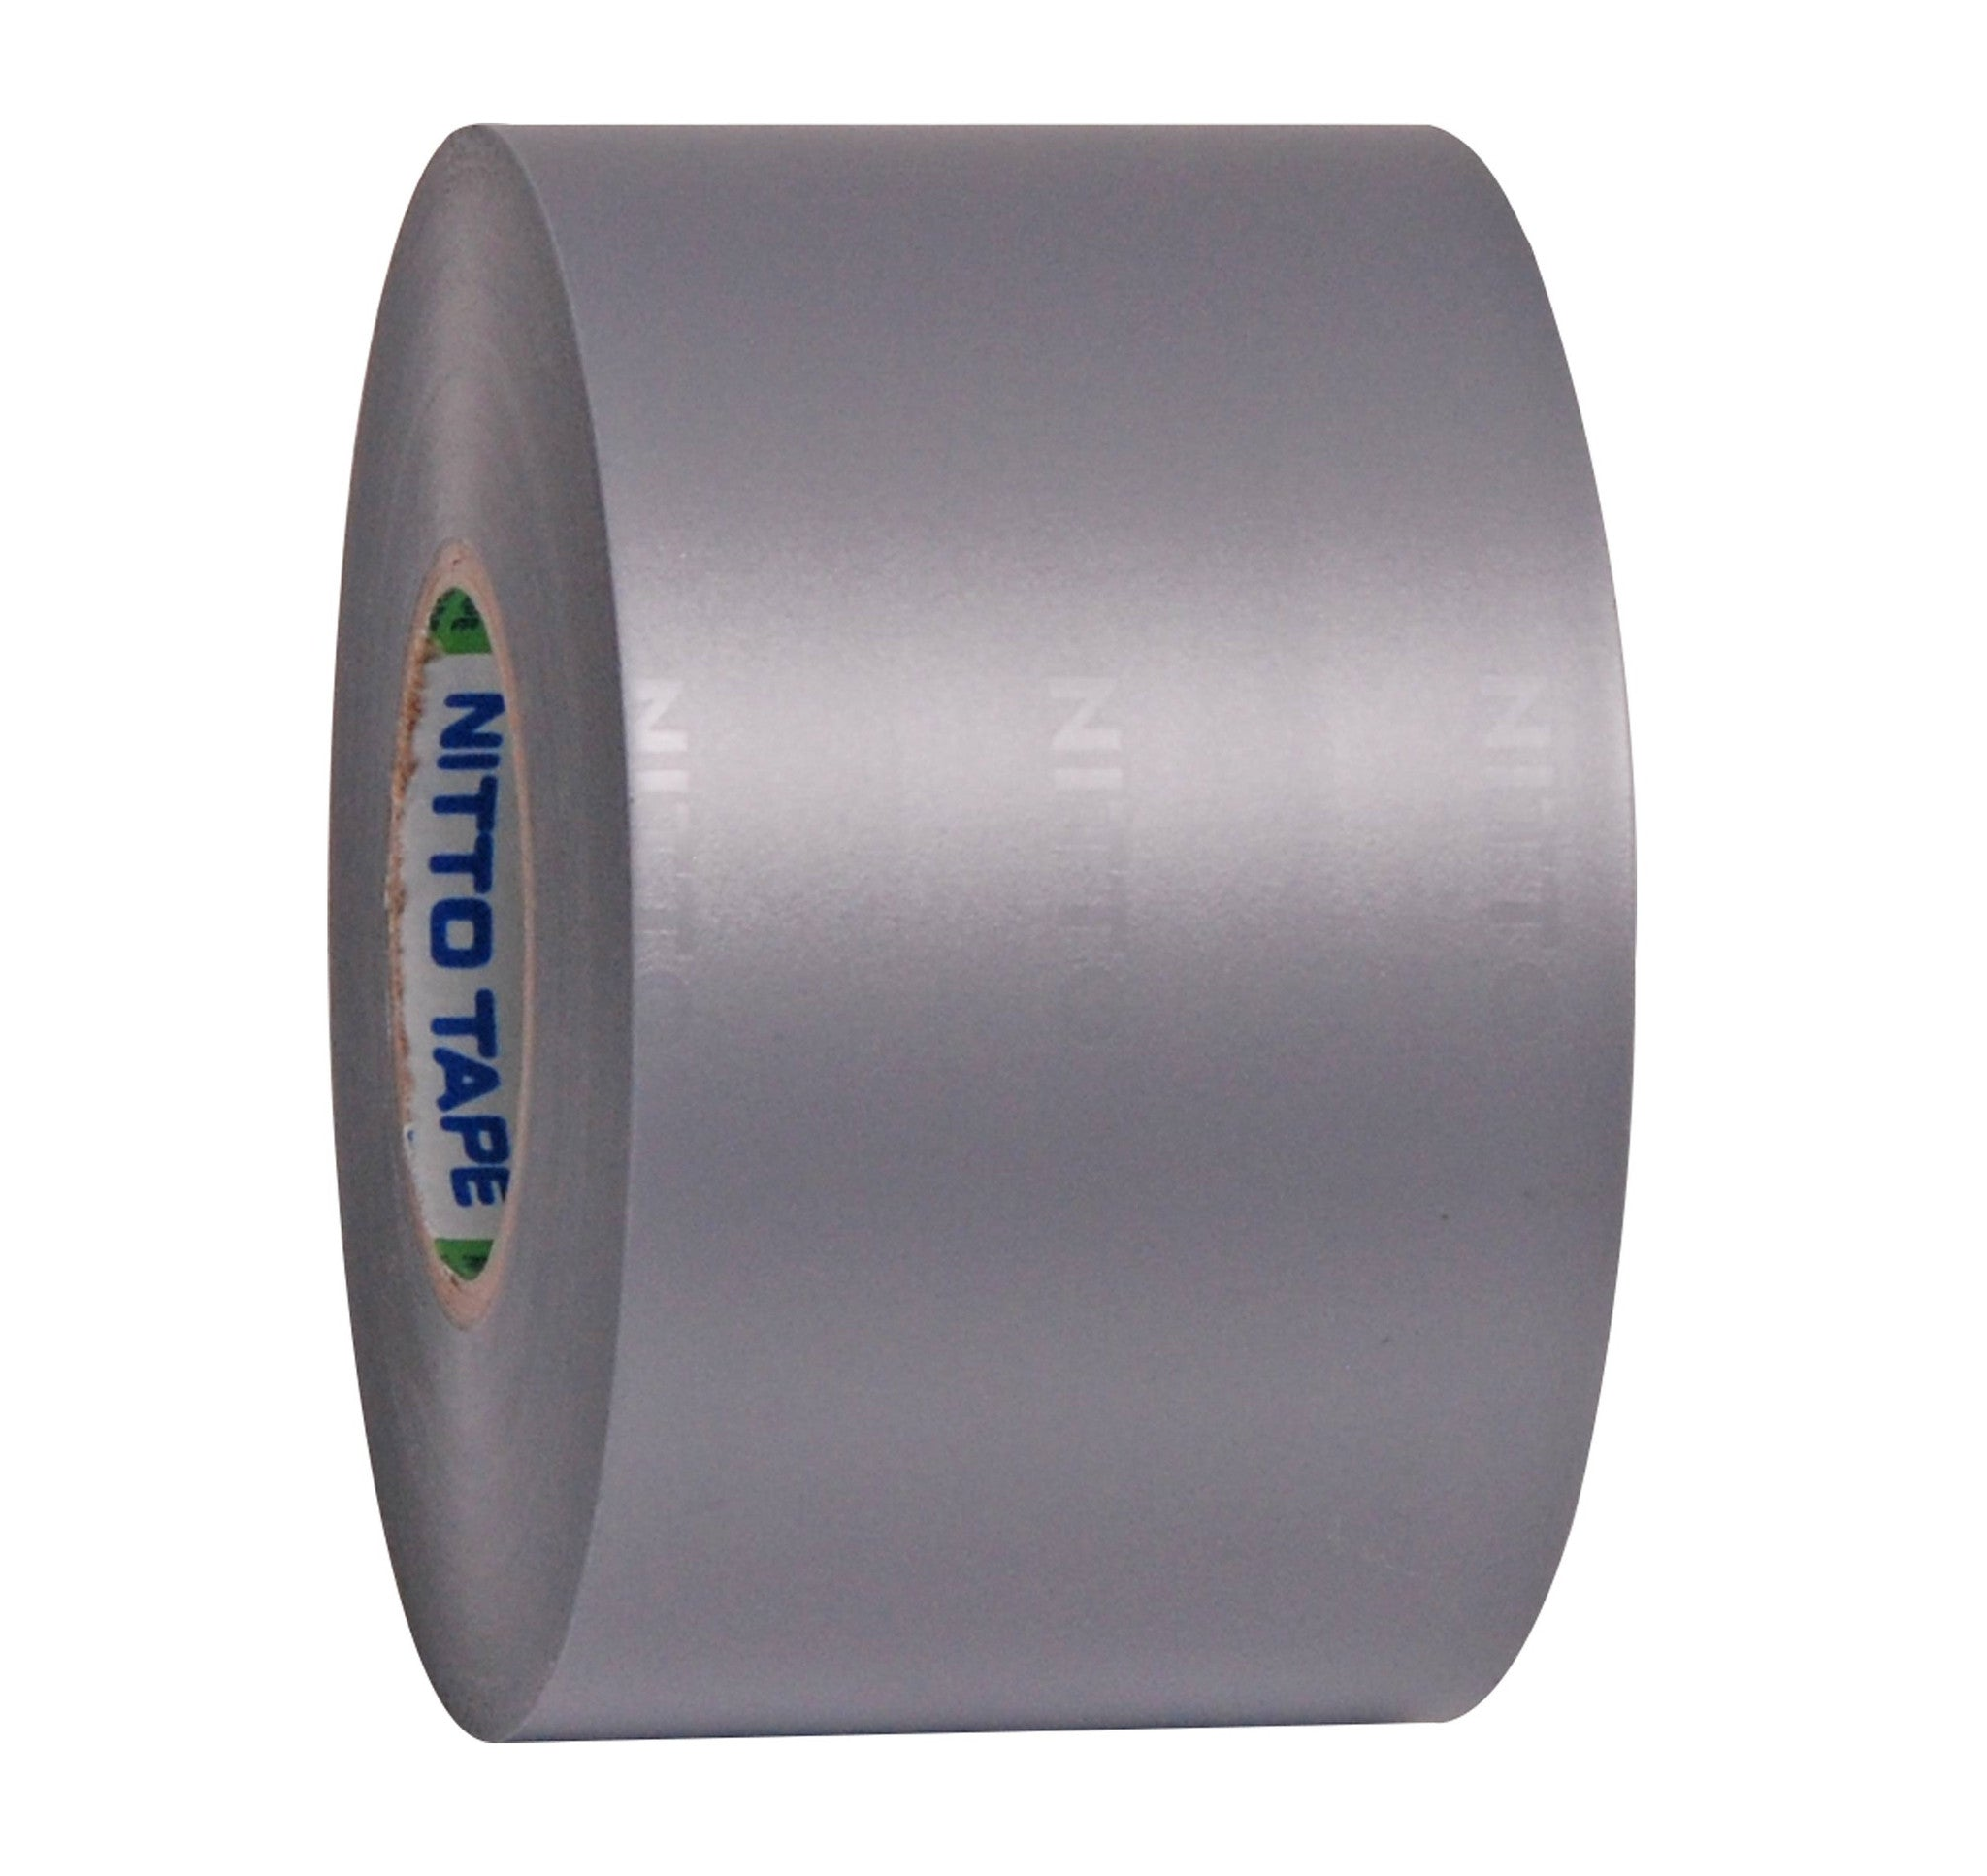 Nitto 48mm x 30M Duct Tape - Silver - BNR Industrial